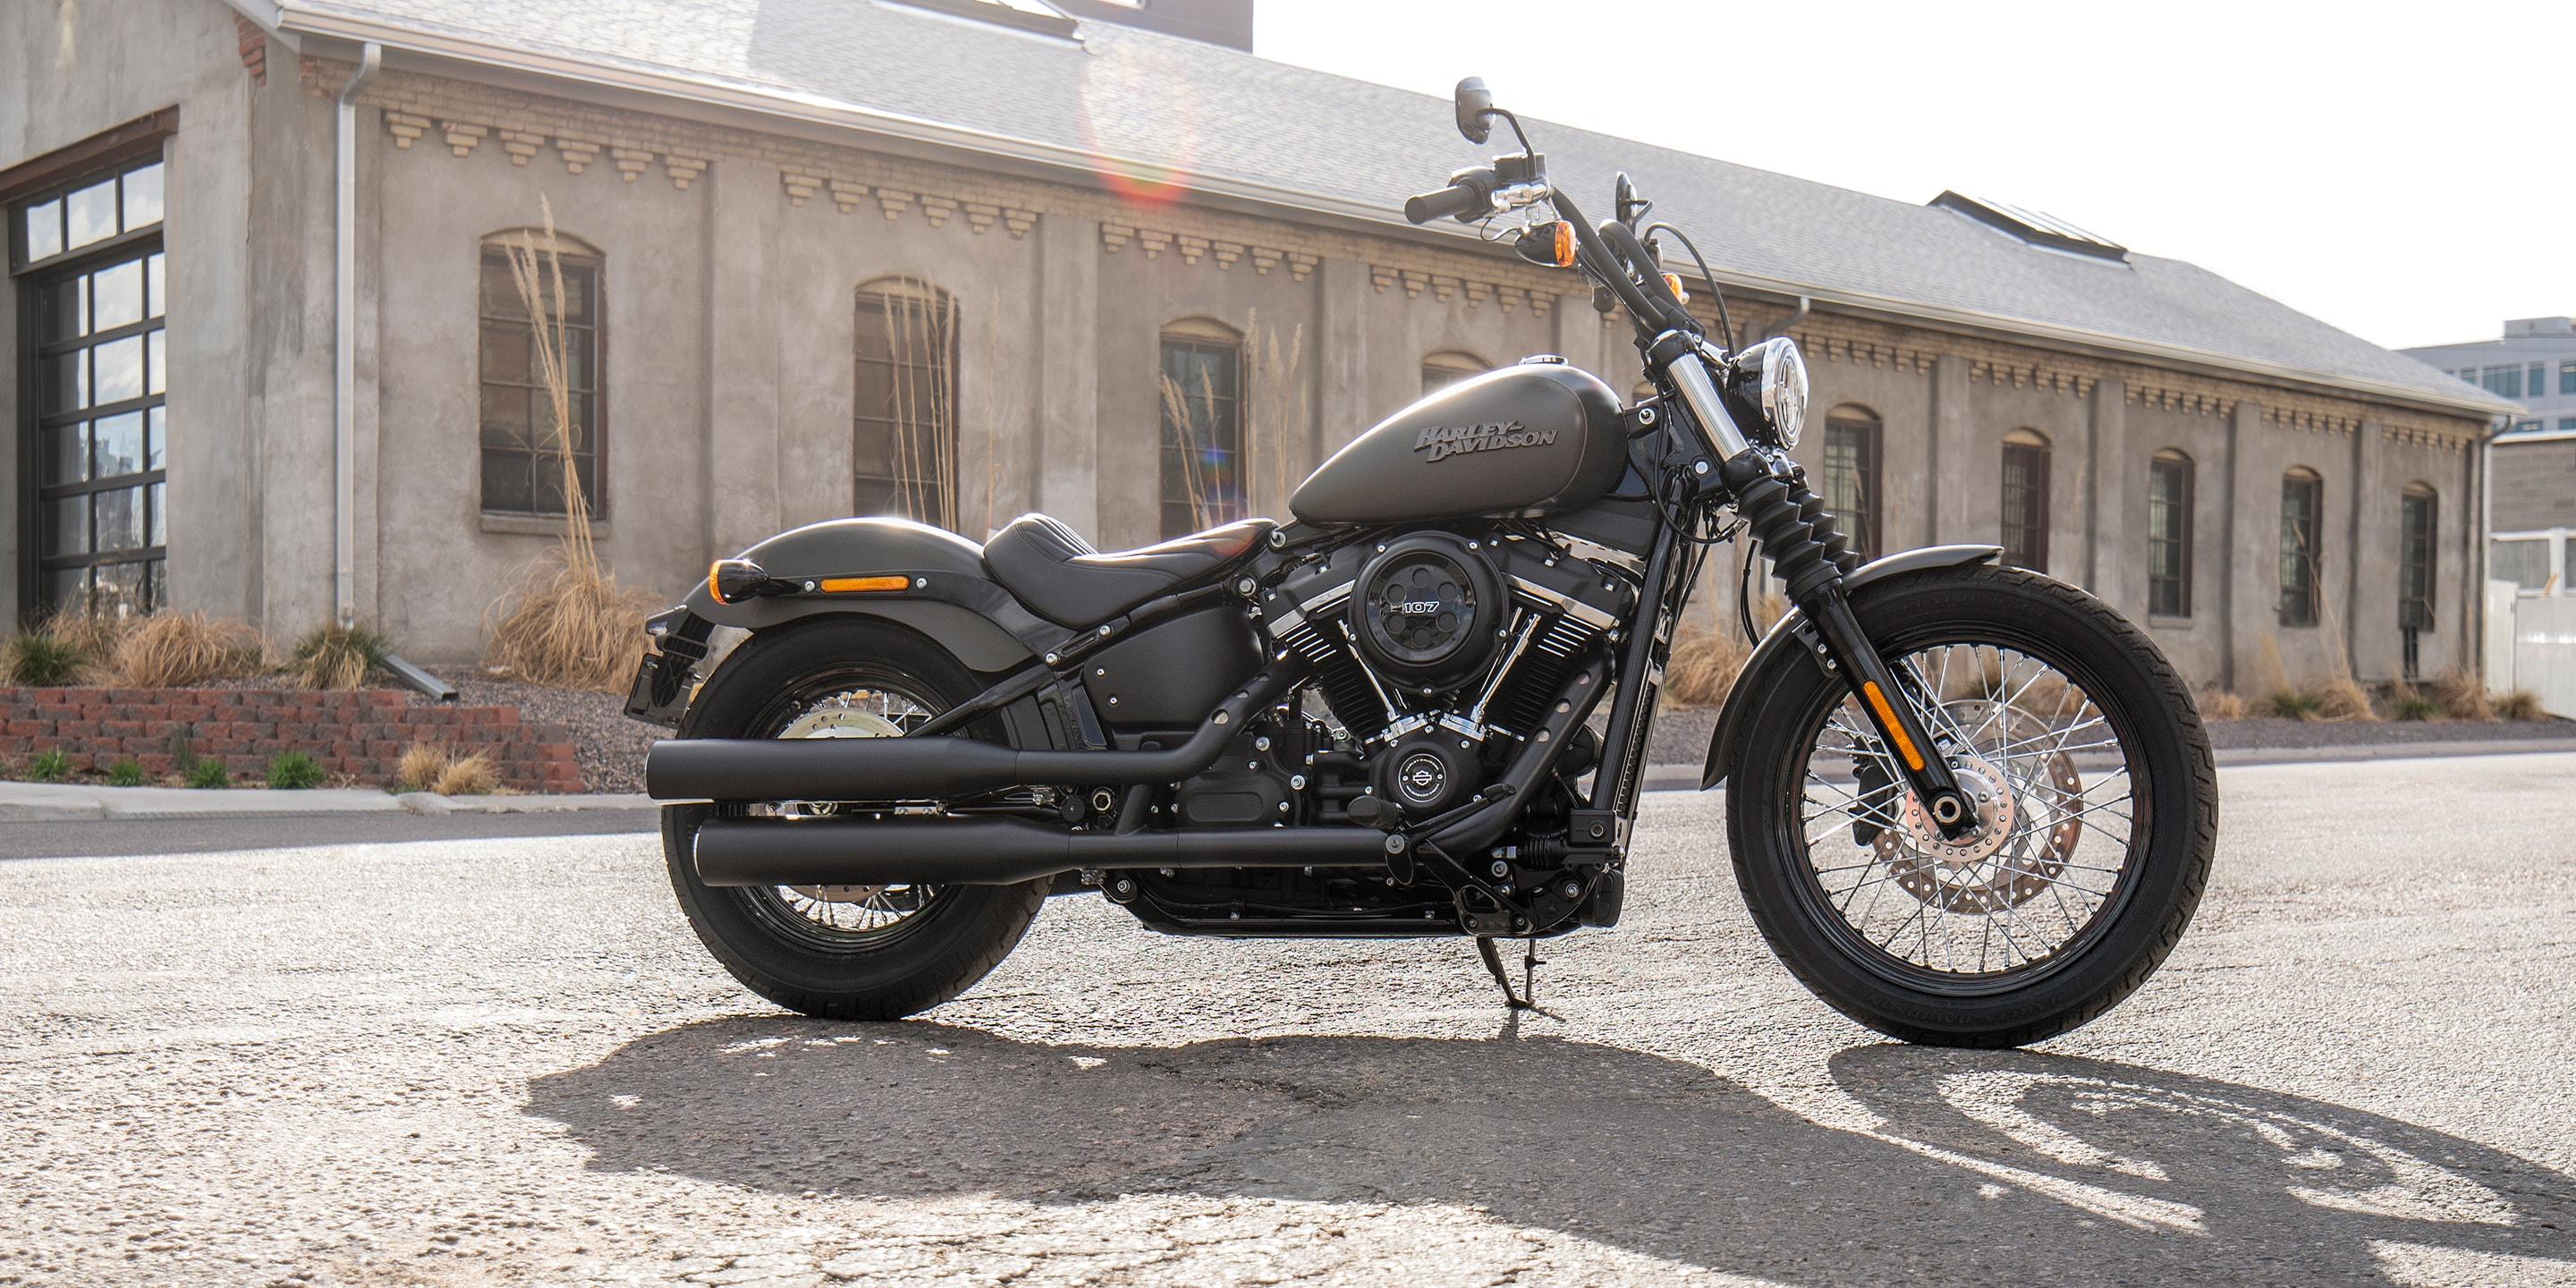 2019 Street Bob motorcycle Parked on the street